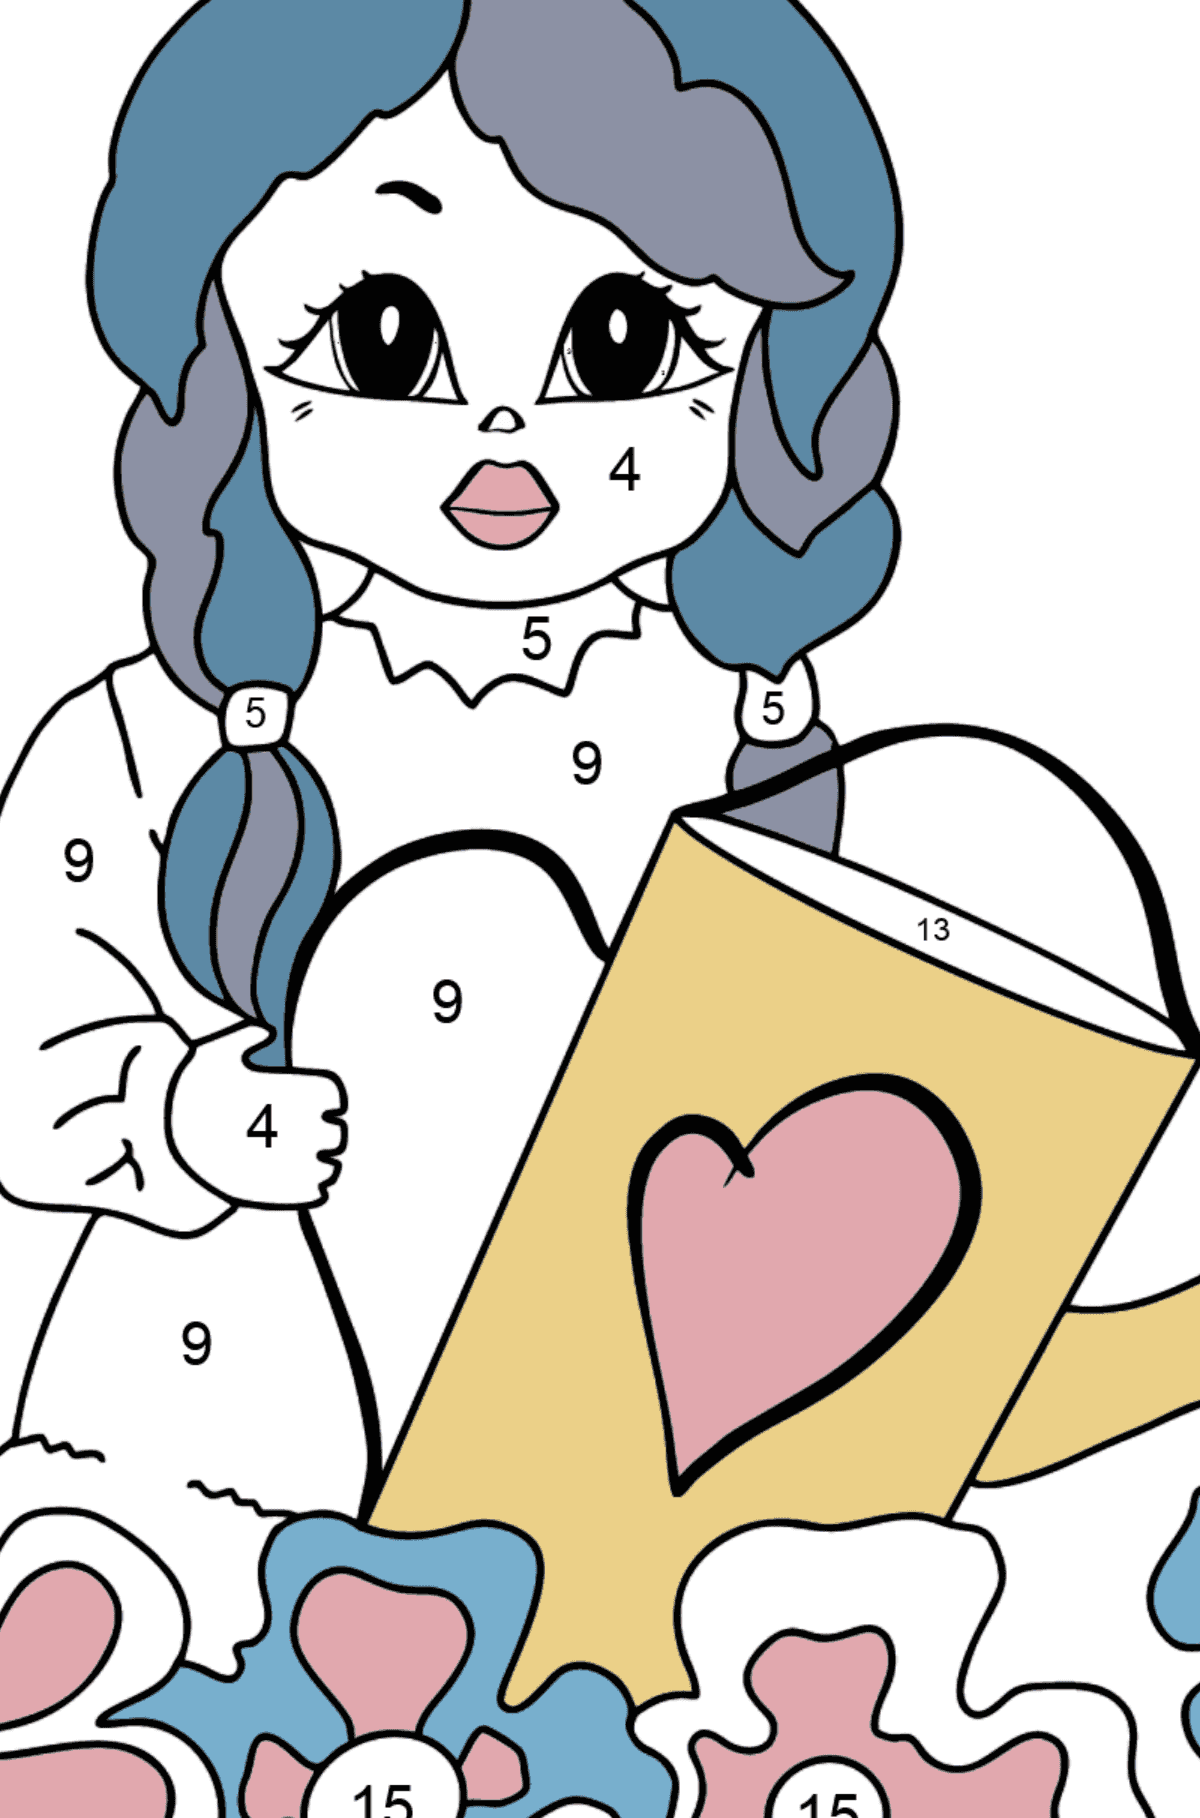 Coloring Page - A Princess with a Watering Can - For Girls - Coloring by Numbers for Kids